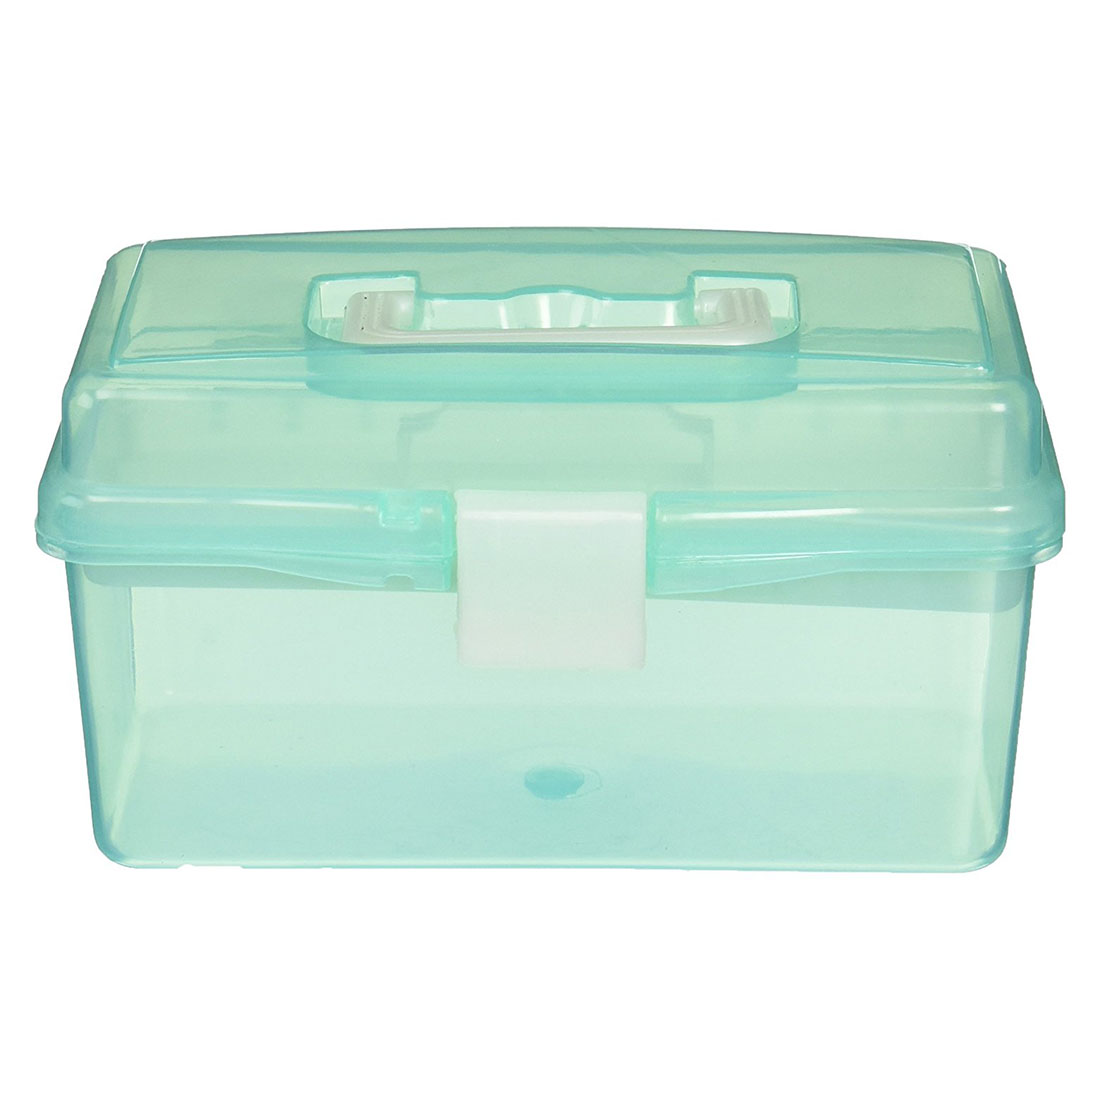 BLEL Hot Clear Turquoise Plastic Tray 2 Compartment Tool Storage Box Case magnet 2 compartment pp storage box